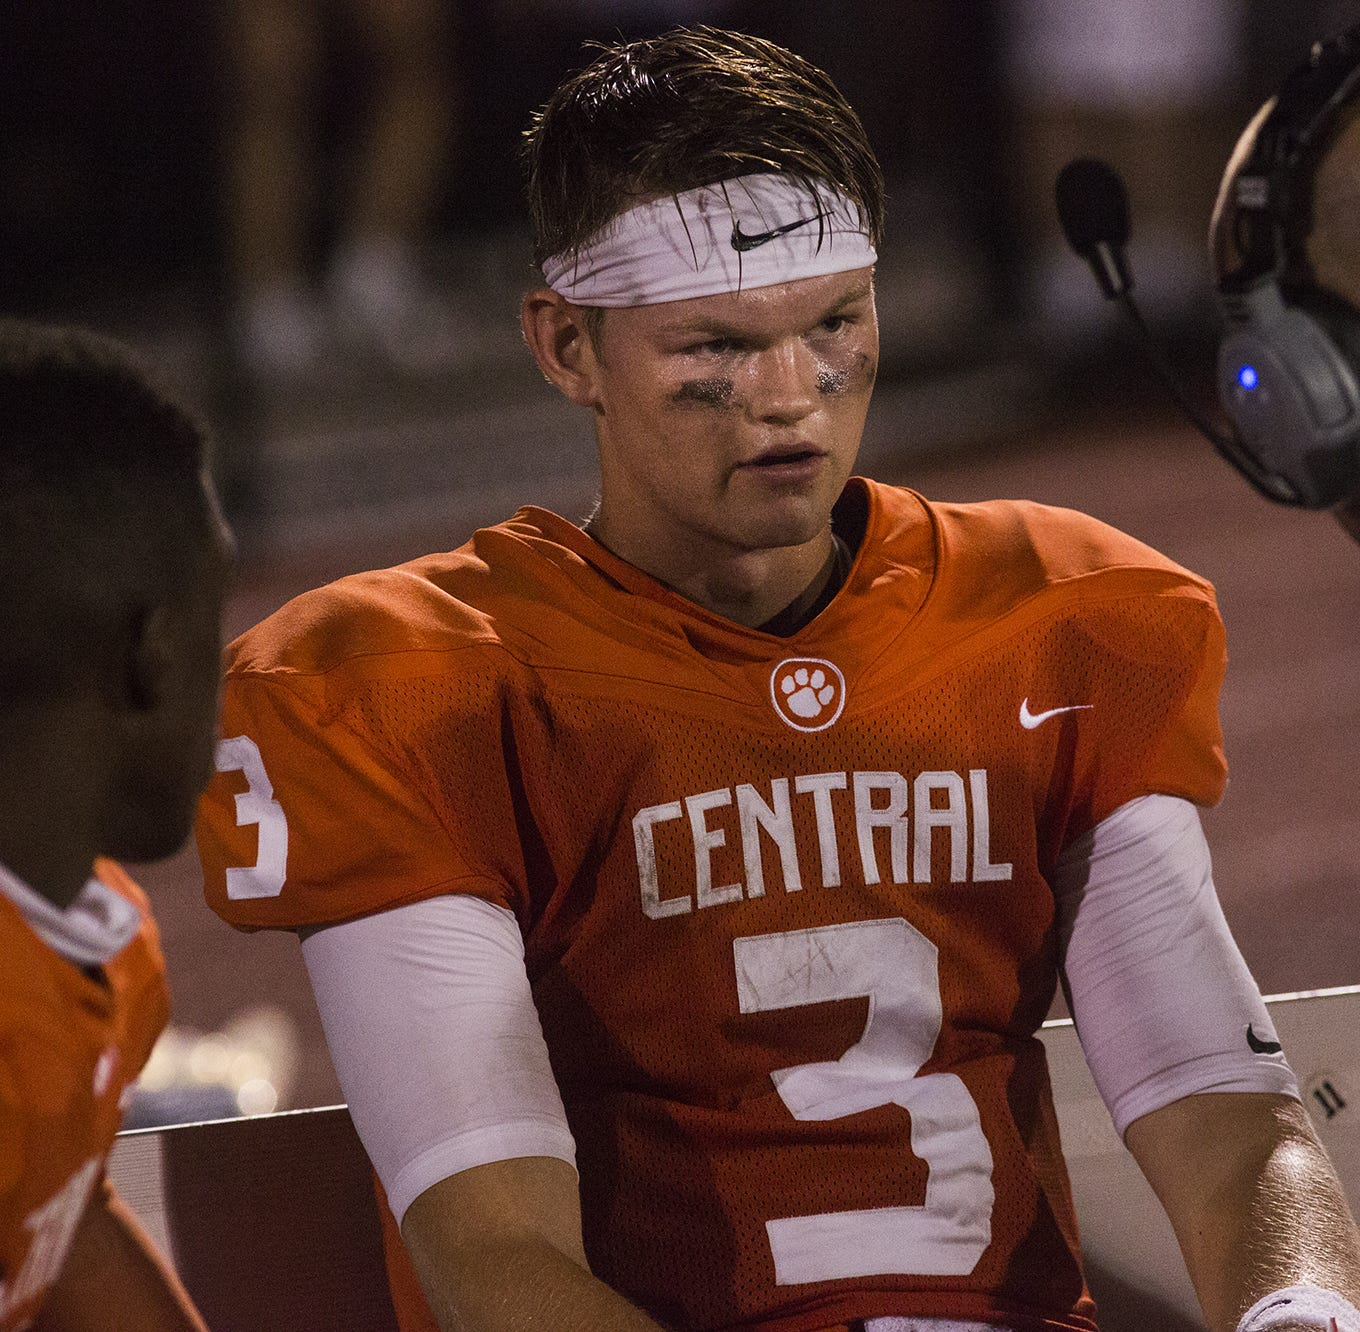 Central York flips the script on Dallastown a year after failing to finish strong